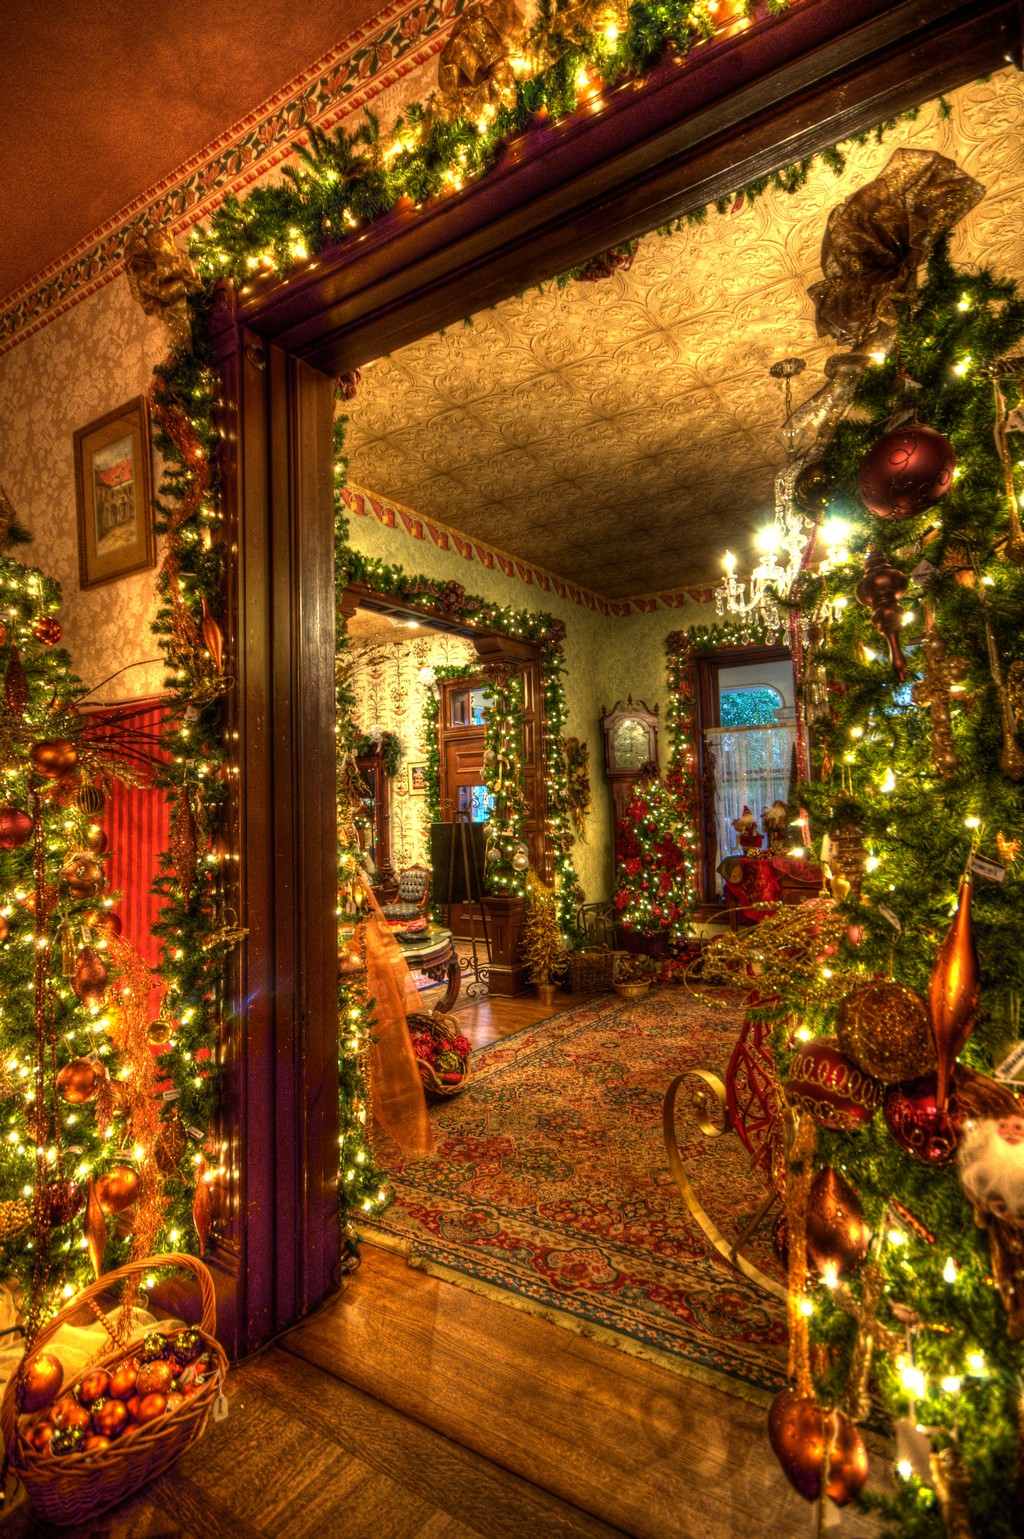 House Decoration Images 30 Beautiful Victorian Christmas Decorations Ideas